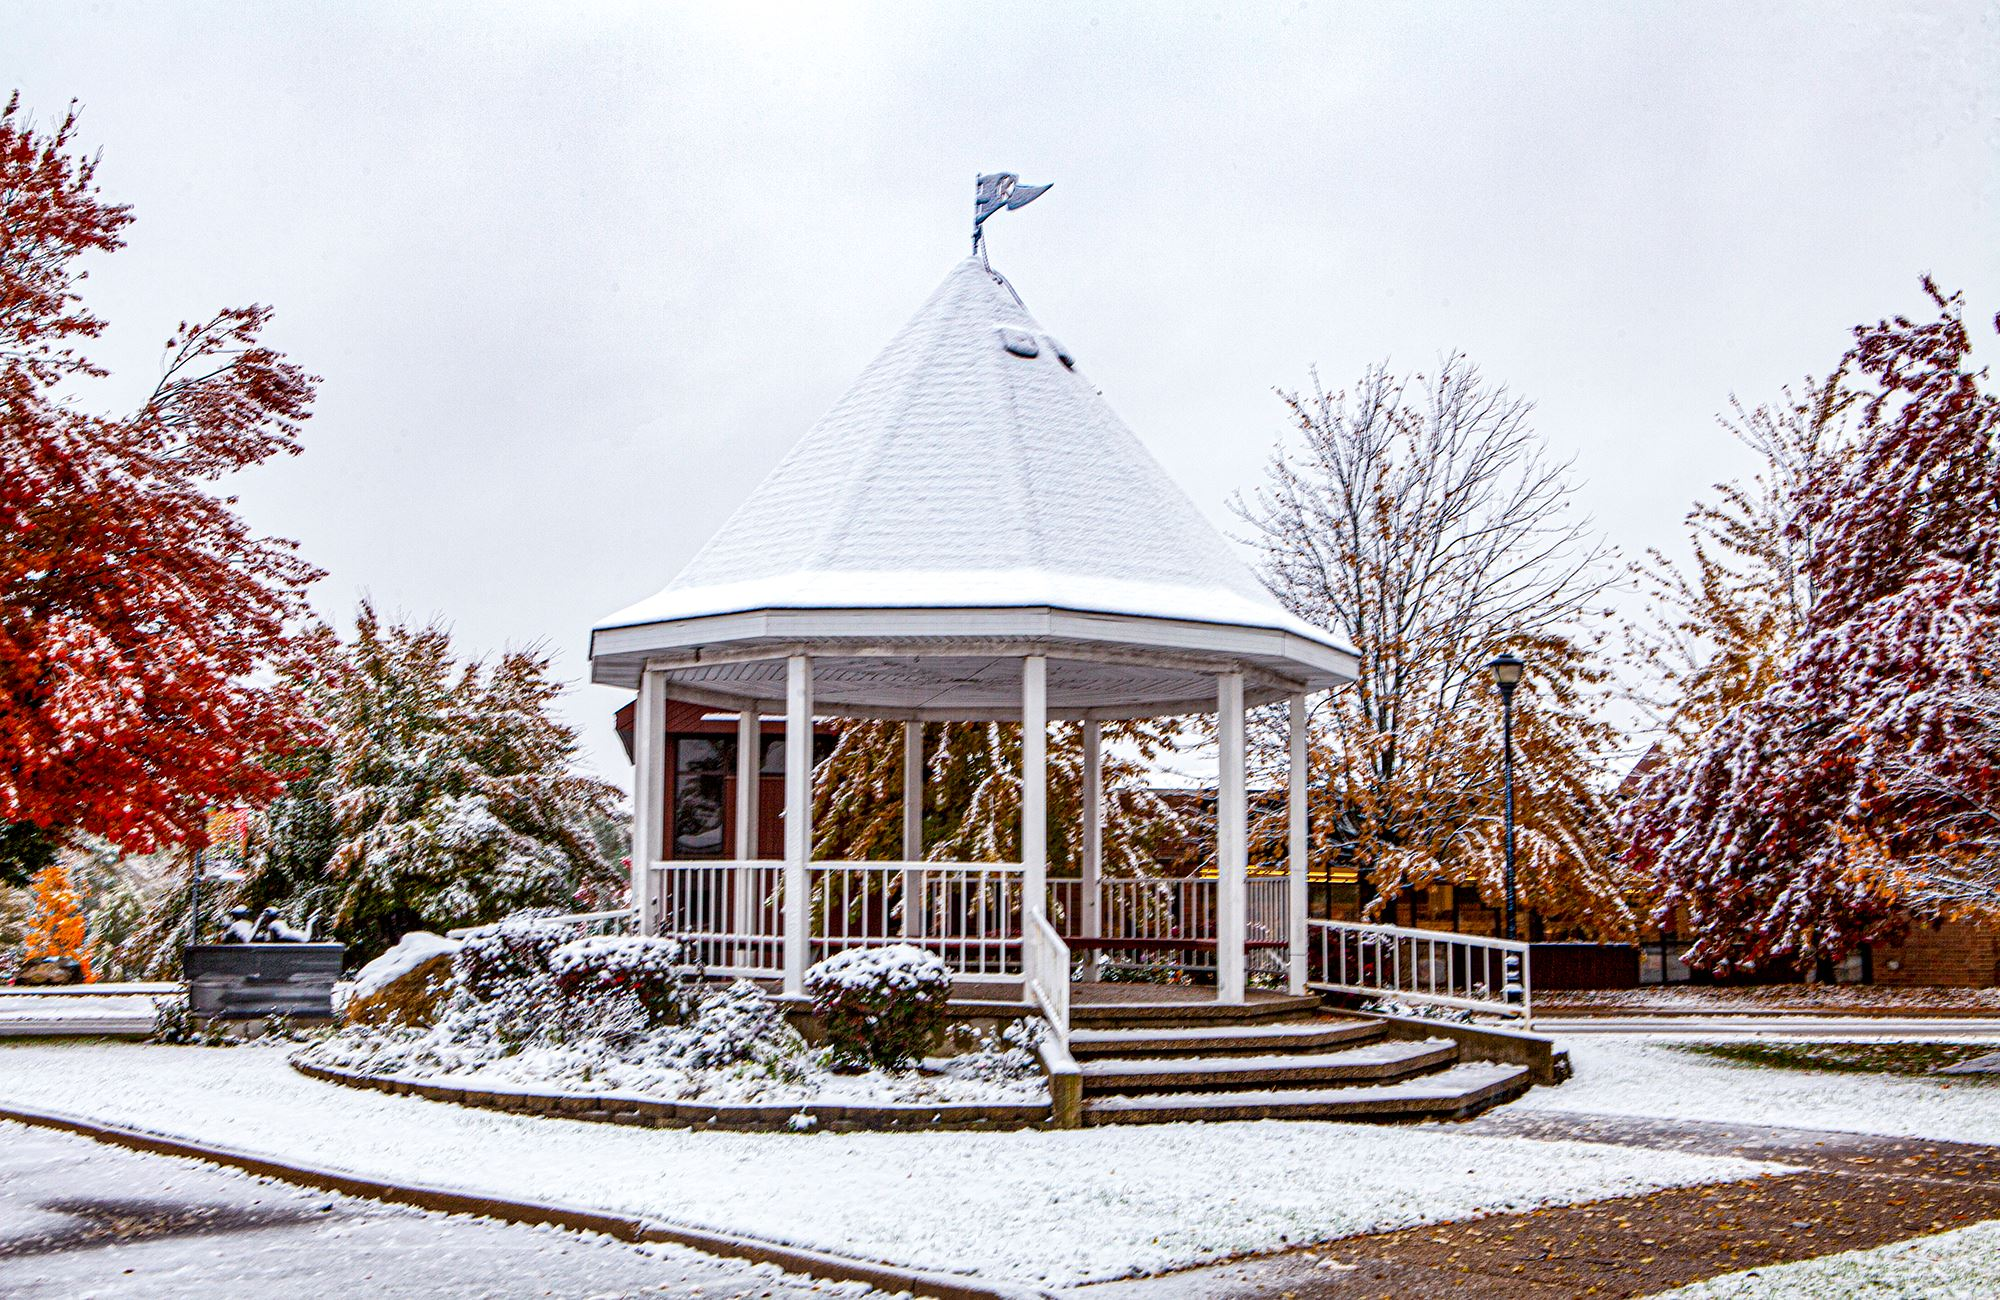 Photo of the Gazebo in Winter 2021 with snow